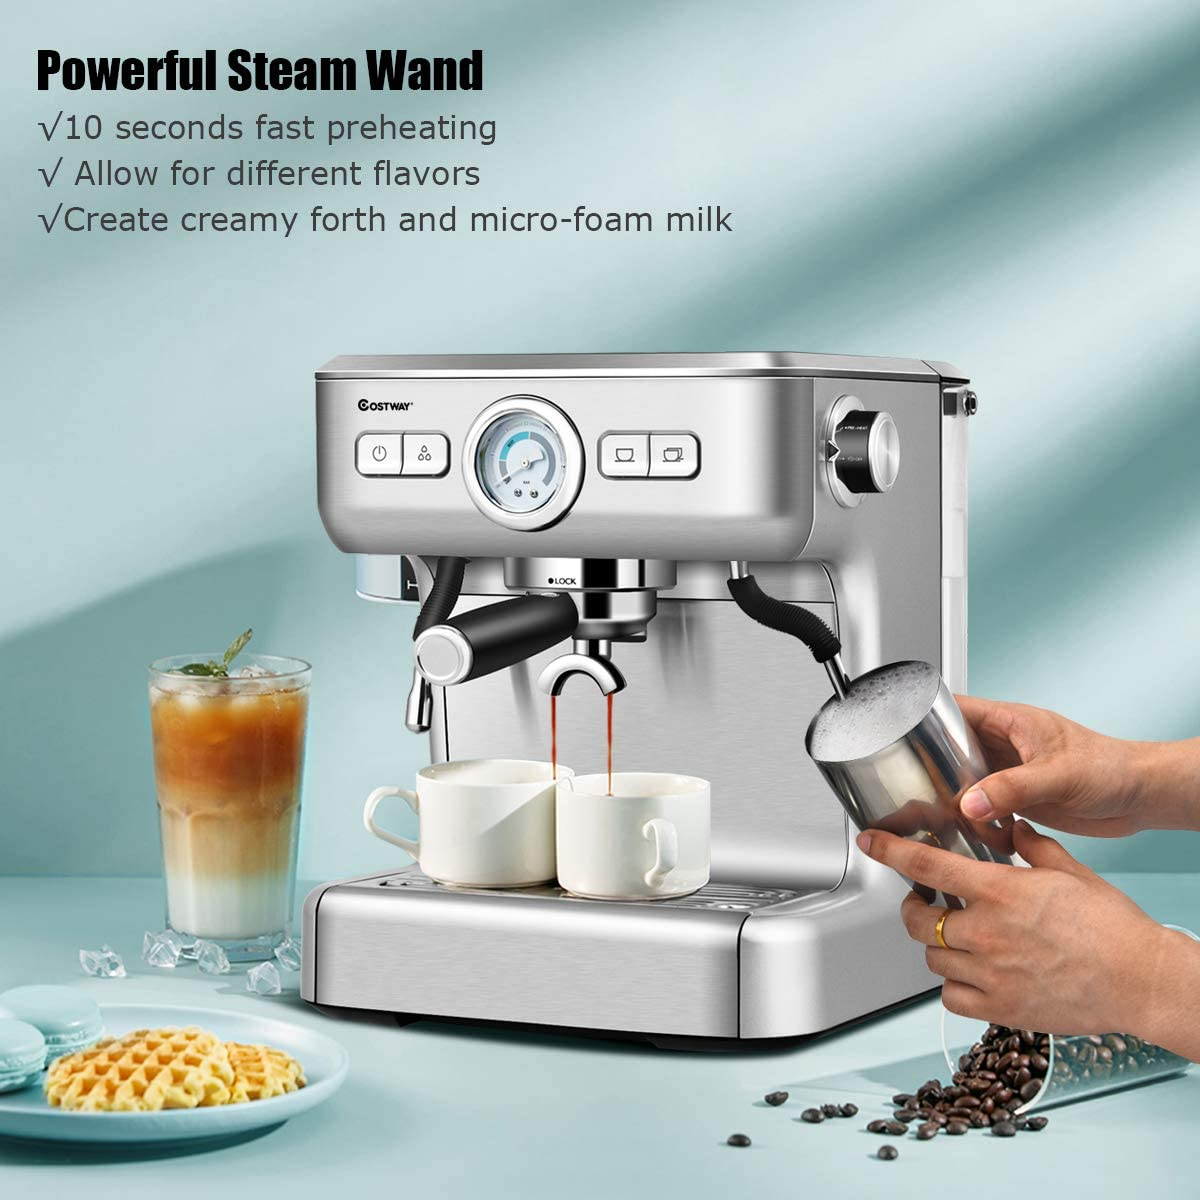 ARLIME Semi-Automatic Espresso Machine, 20 Bar Pump& Built-In Milk Frother and Steamer&10s Preheating, PID Temperature Control& 2L Removable water tank&Drip Tray&Countertop Cappuccino Maker&Stainless Steel Pressure Coffee Brewer